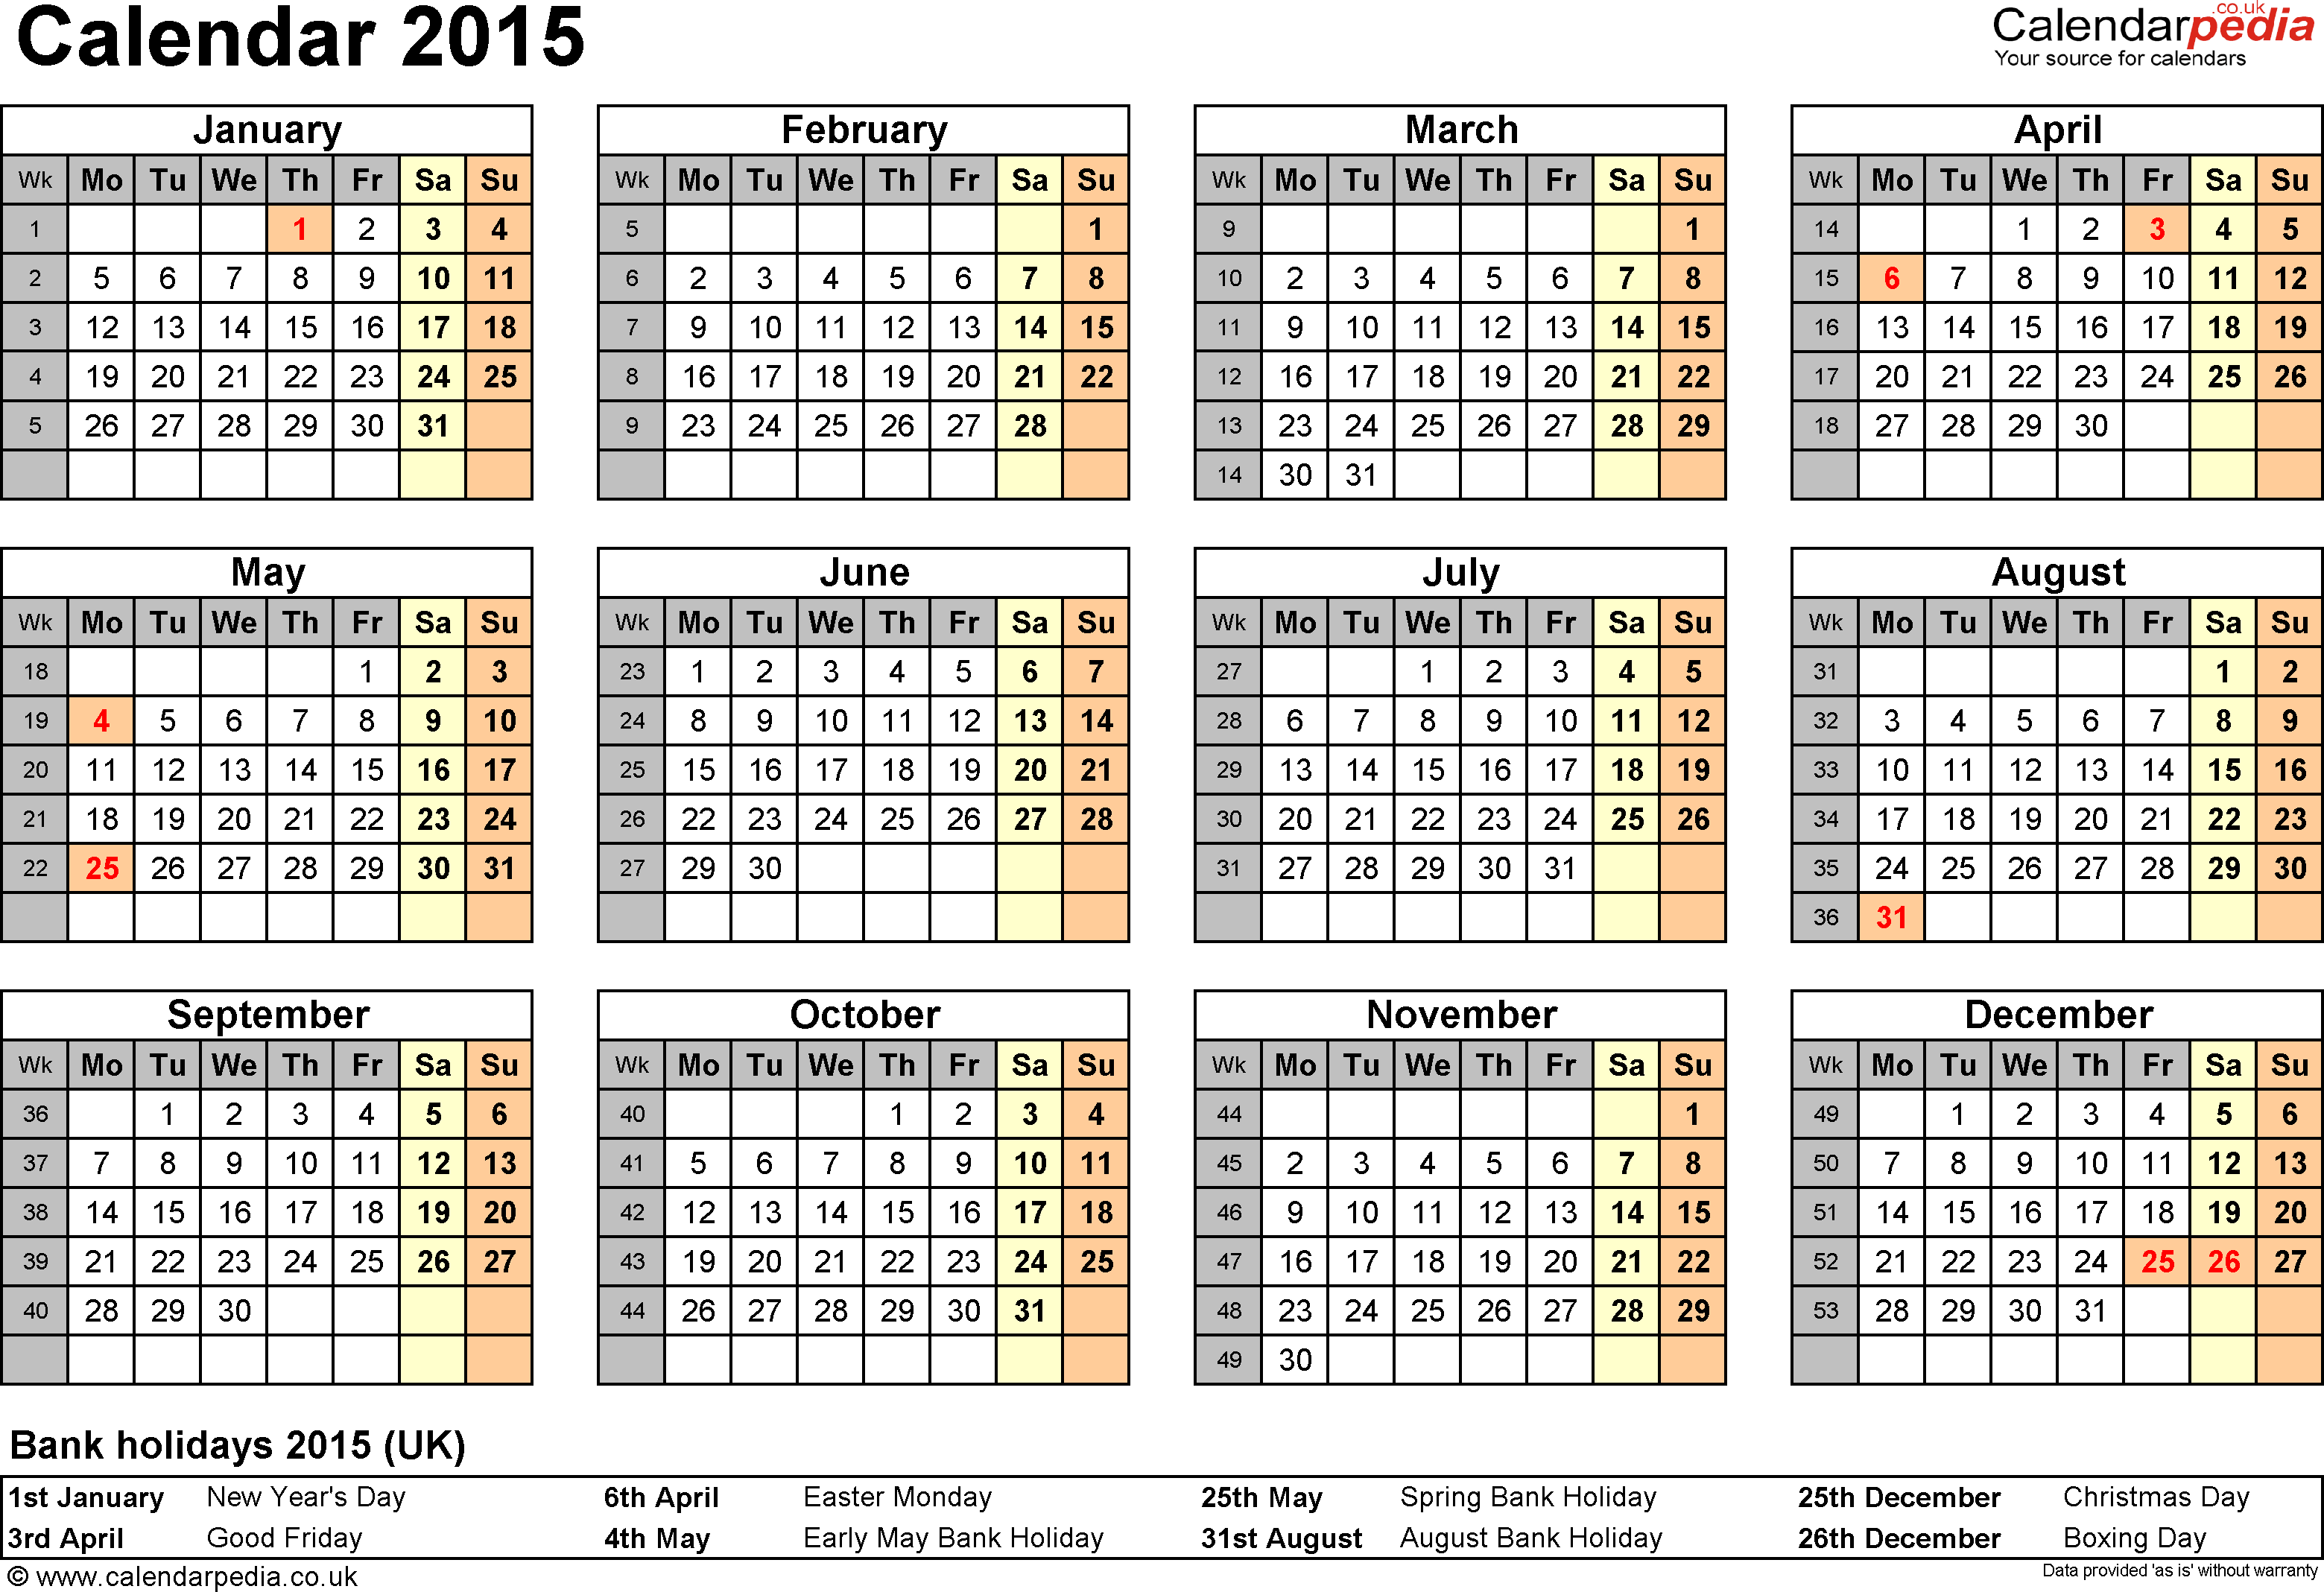 Calendar 2015 (UK) - 16 free printable PDF templates